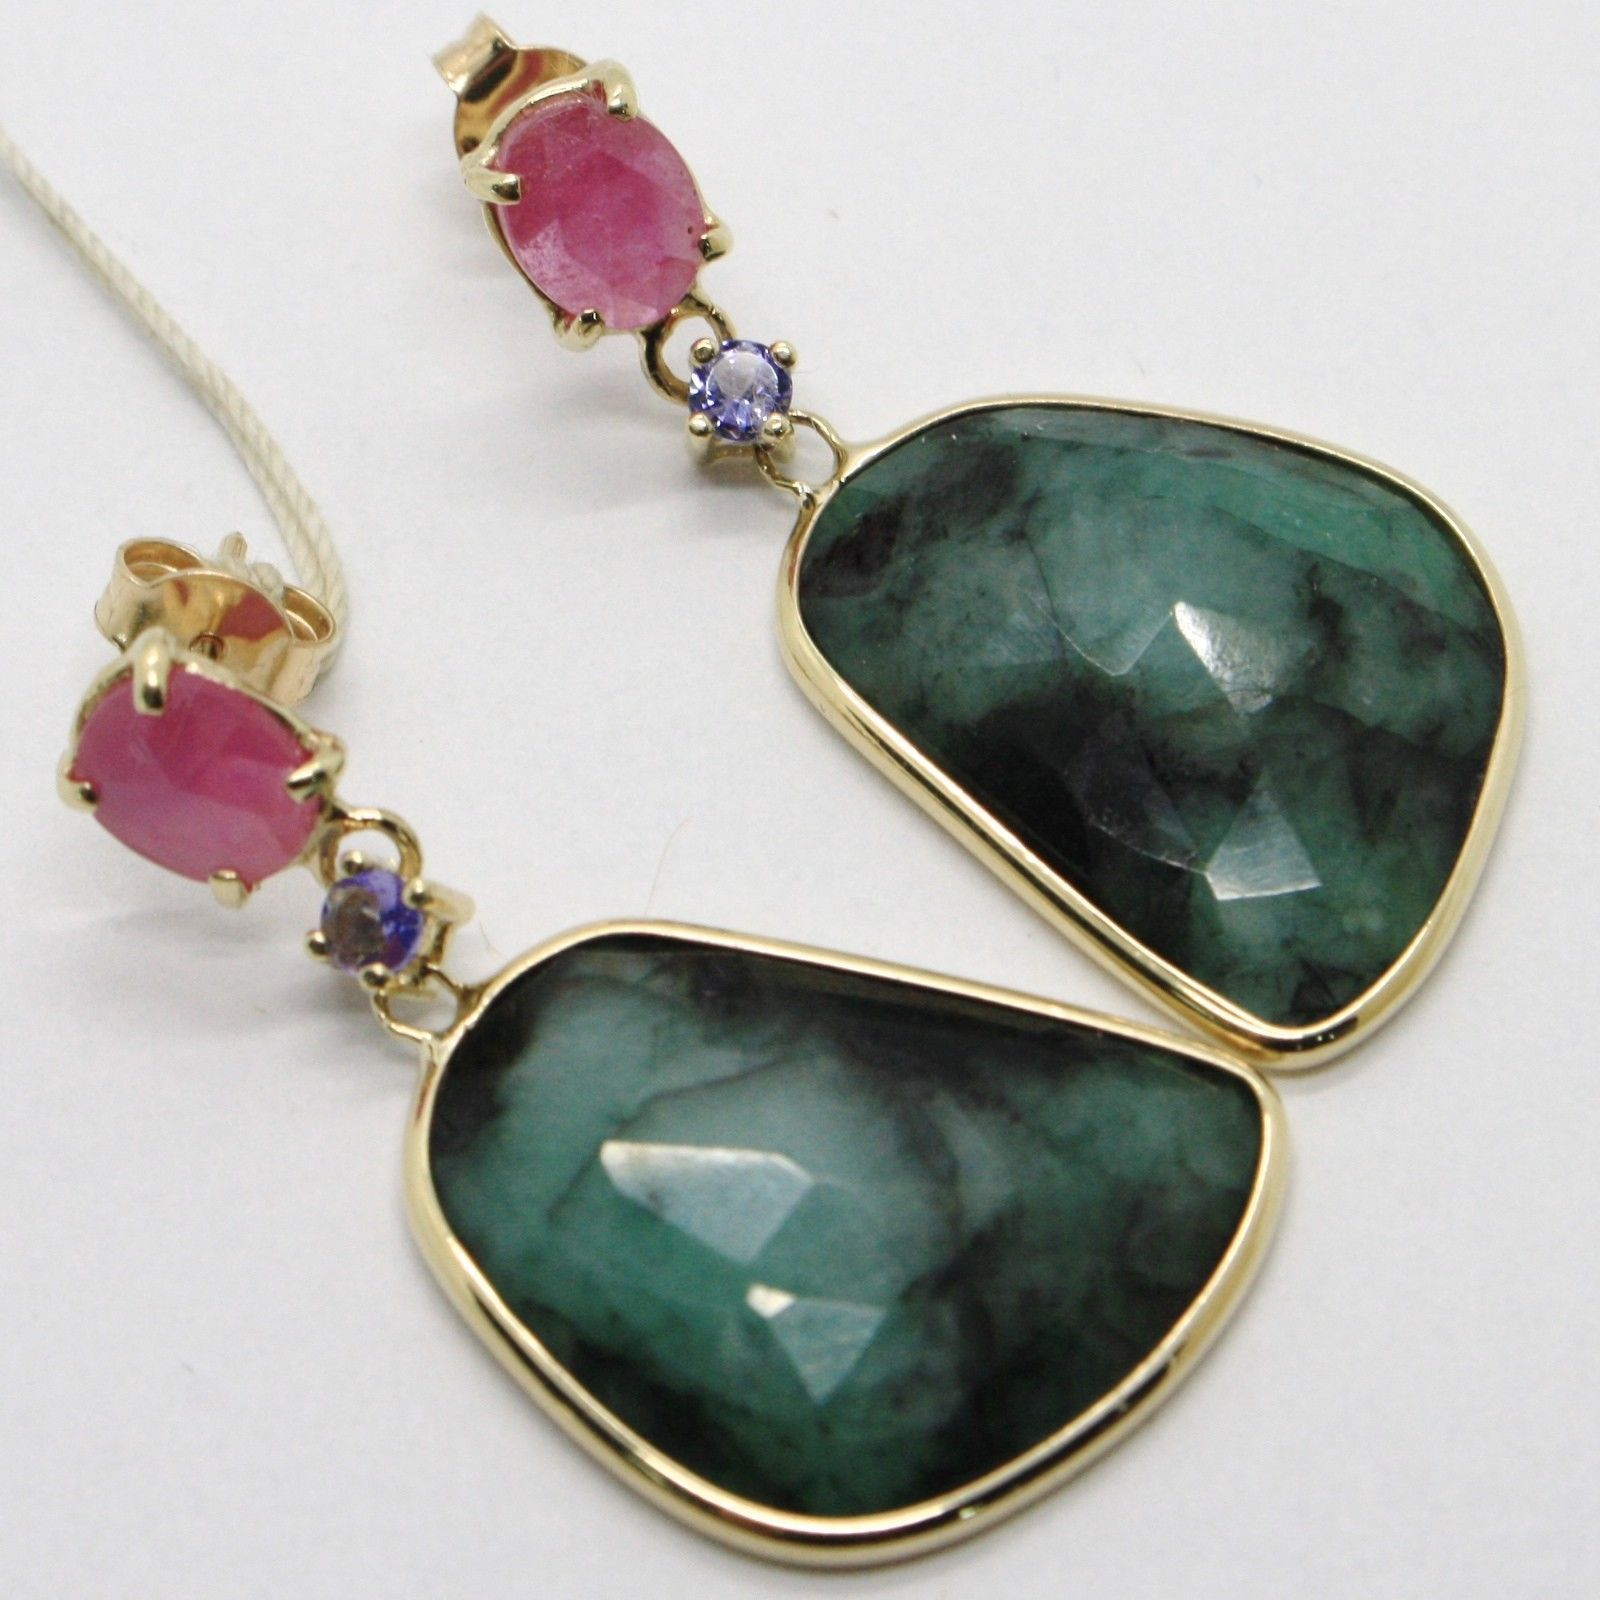 YELLOW GOLD EARRINGS 9K WITH SAPPHIRES PINK AND WITH EMERALDS MADE IN ITALY